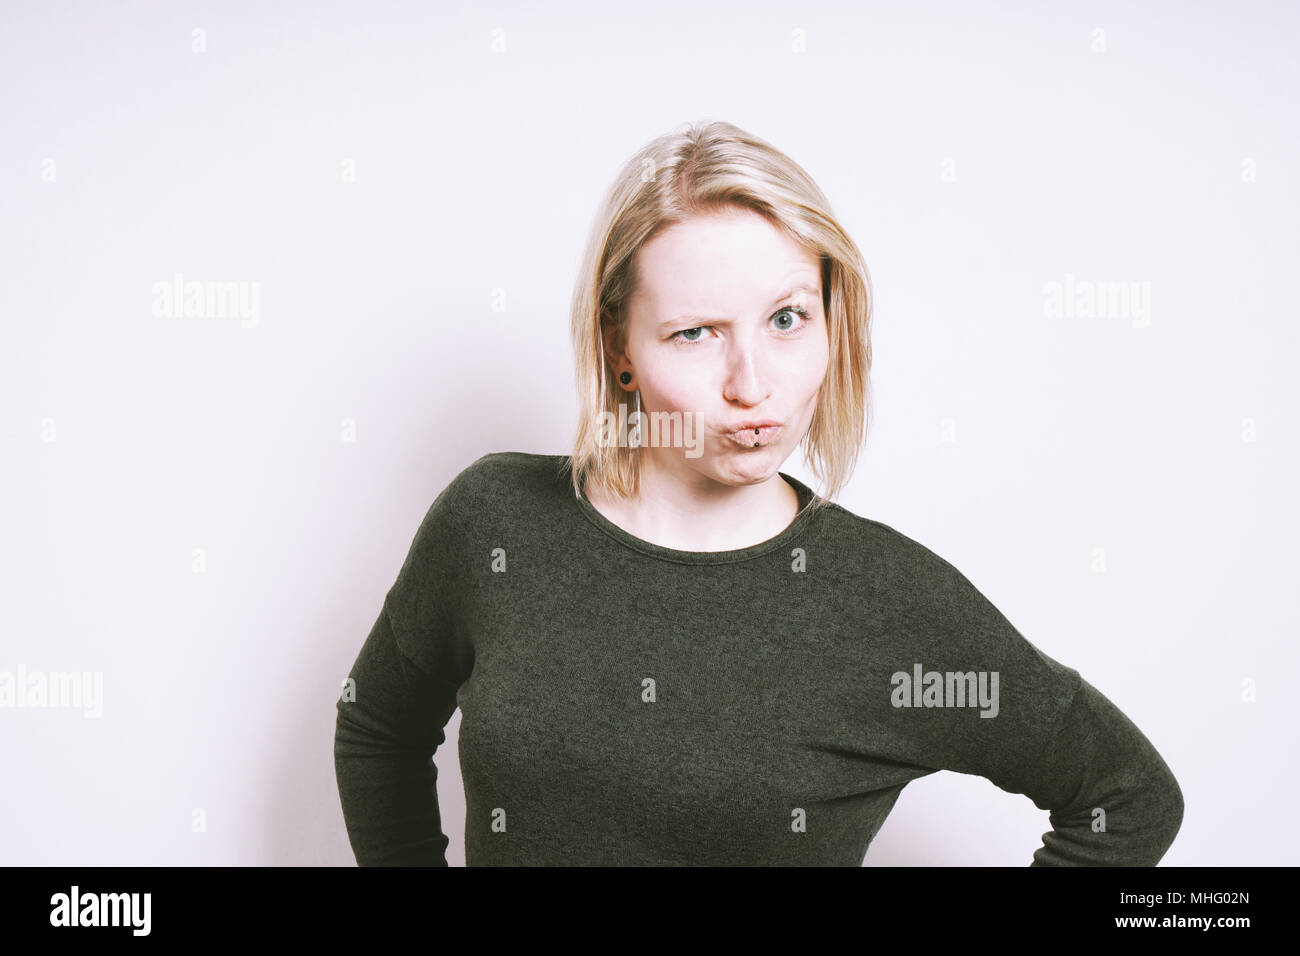 skeptical young woman grimacing making a funny face - Stock Image